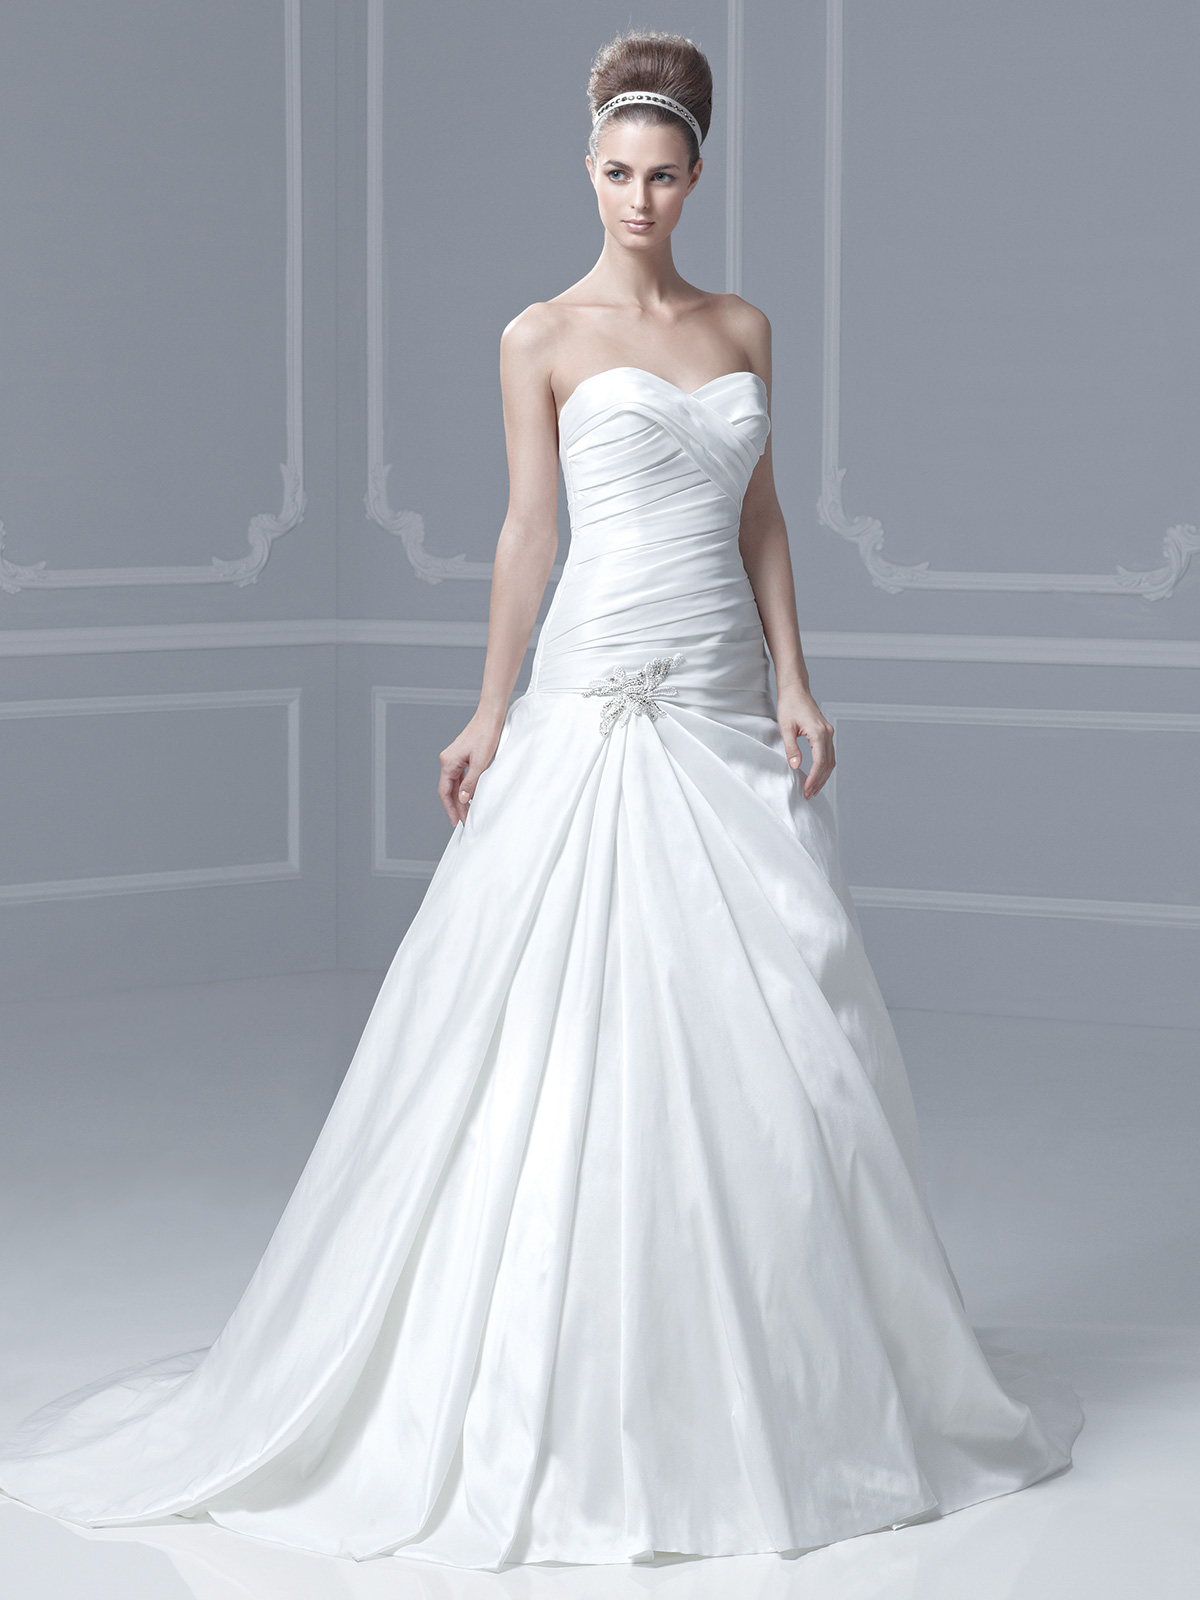 dupioni silk wedding dresses mother of the bride dresses